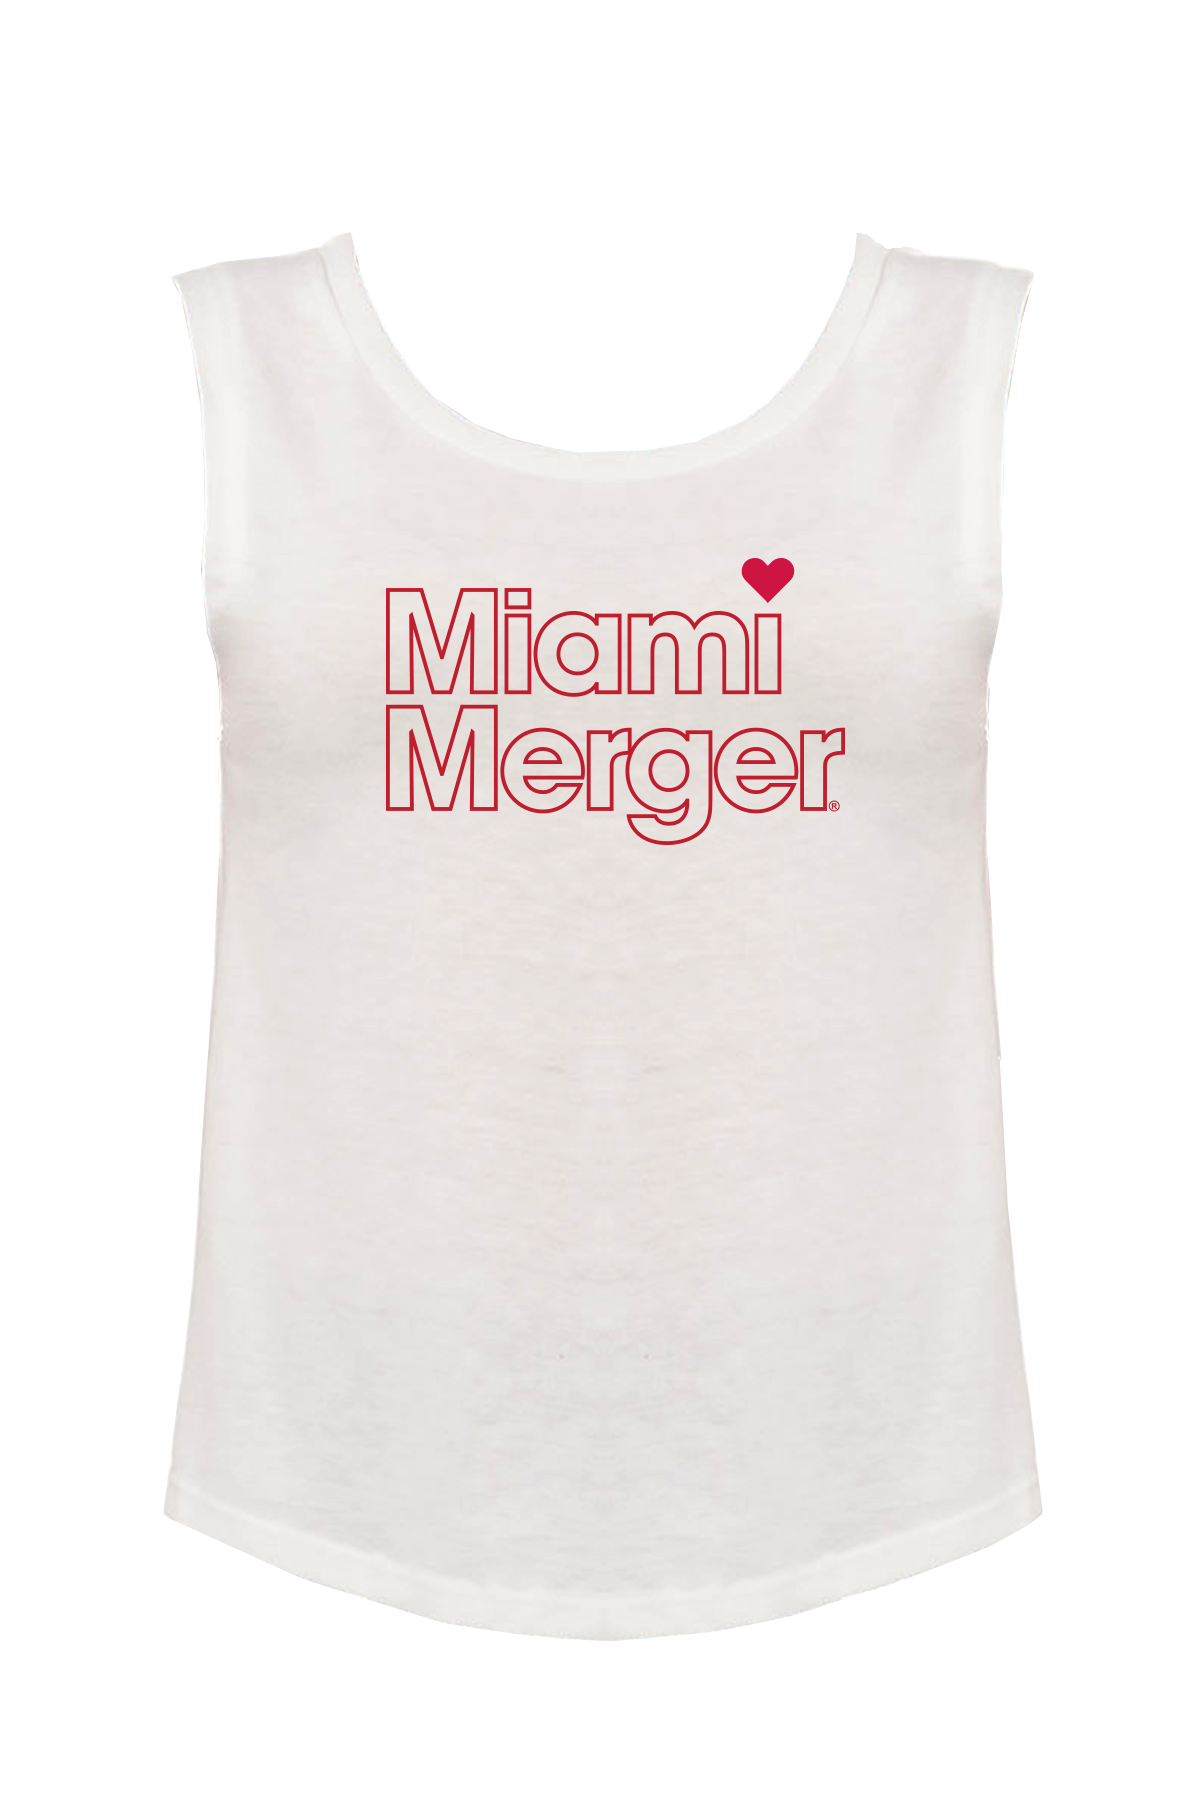 MIAMI UNIVERSITY Redhawks Miami Merger Retro Outline Women's Muscle Tank